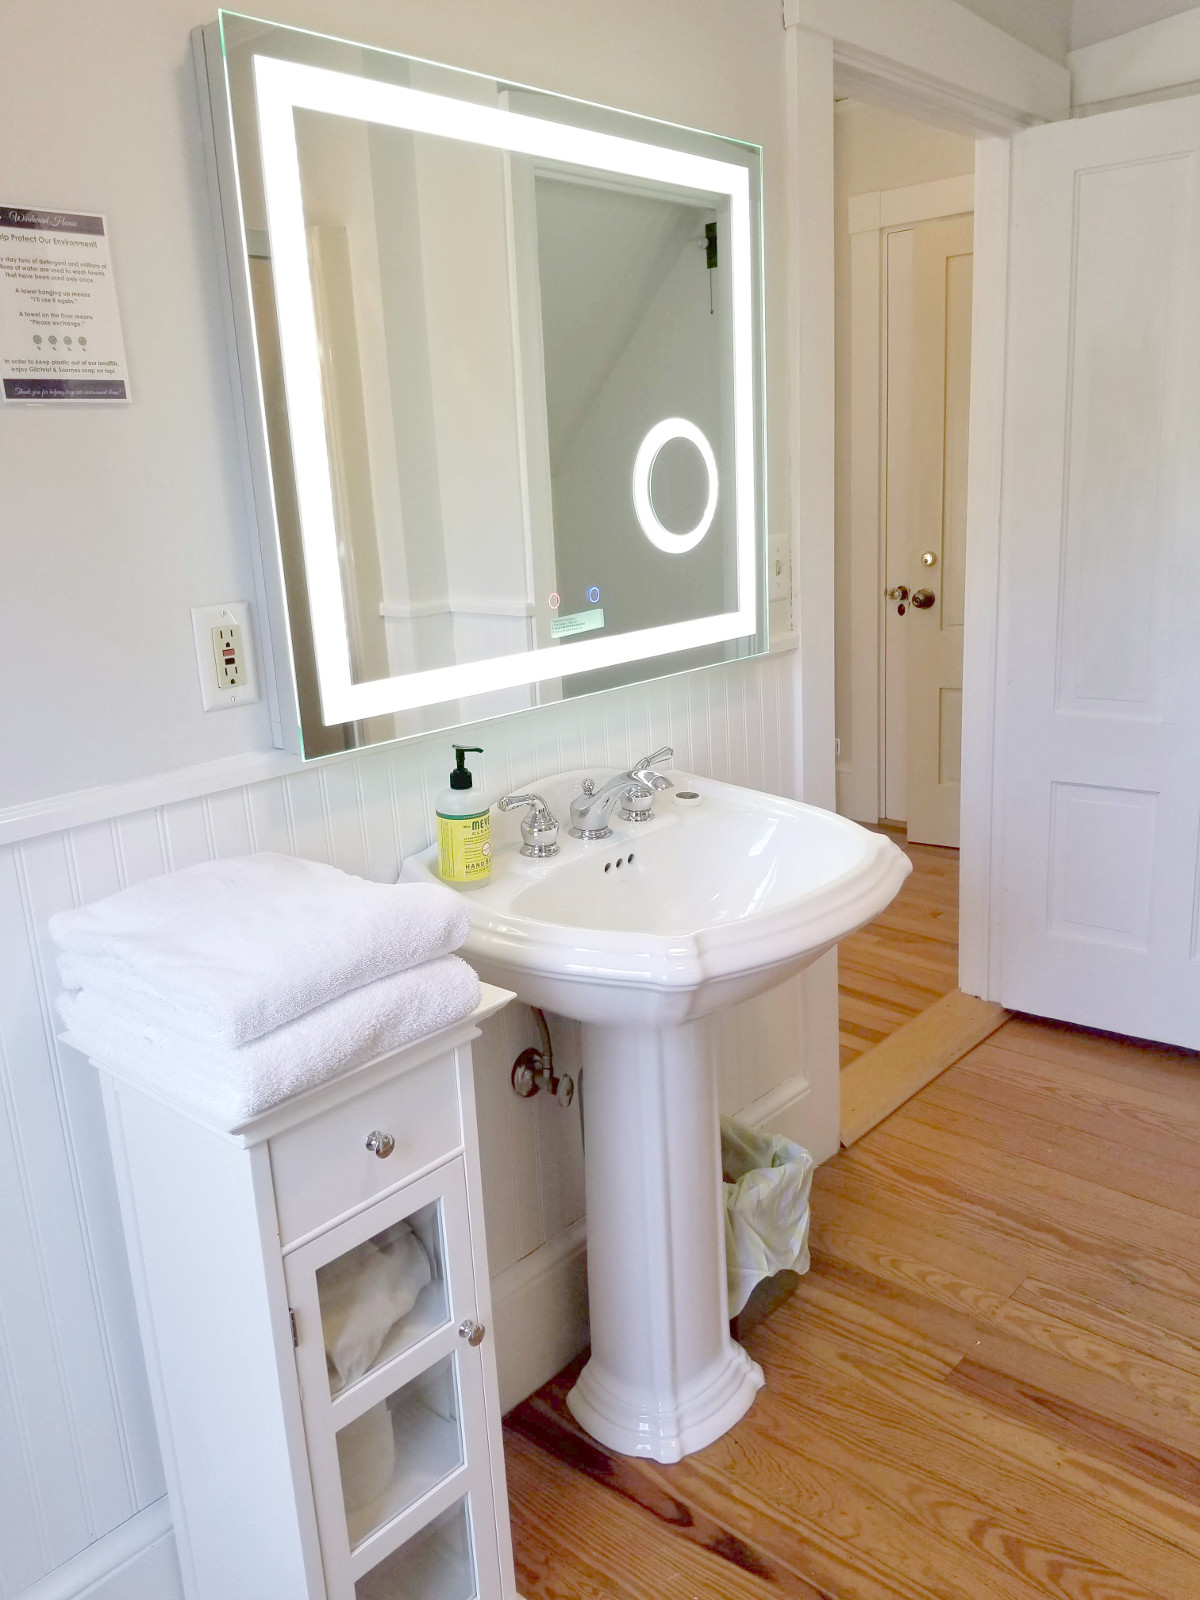 Bathroom sink and mirror.jpg